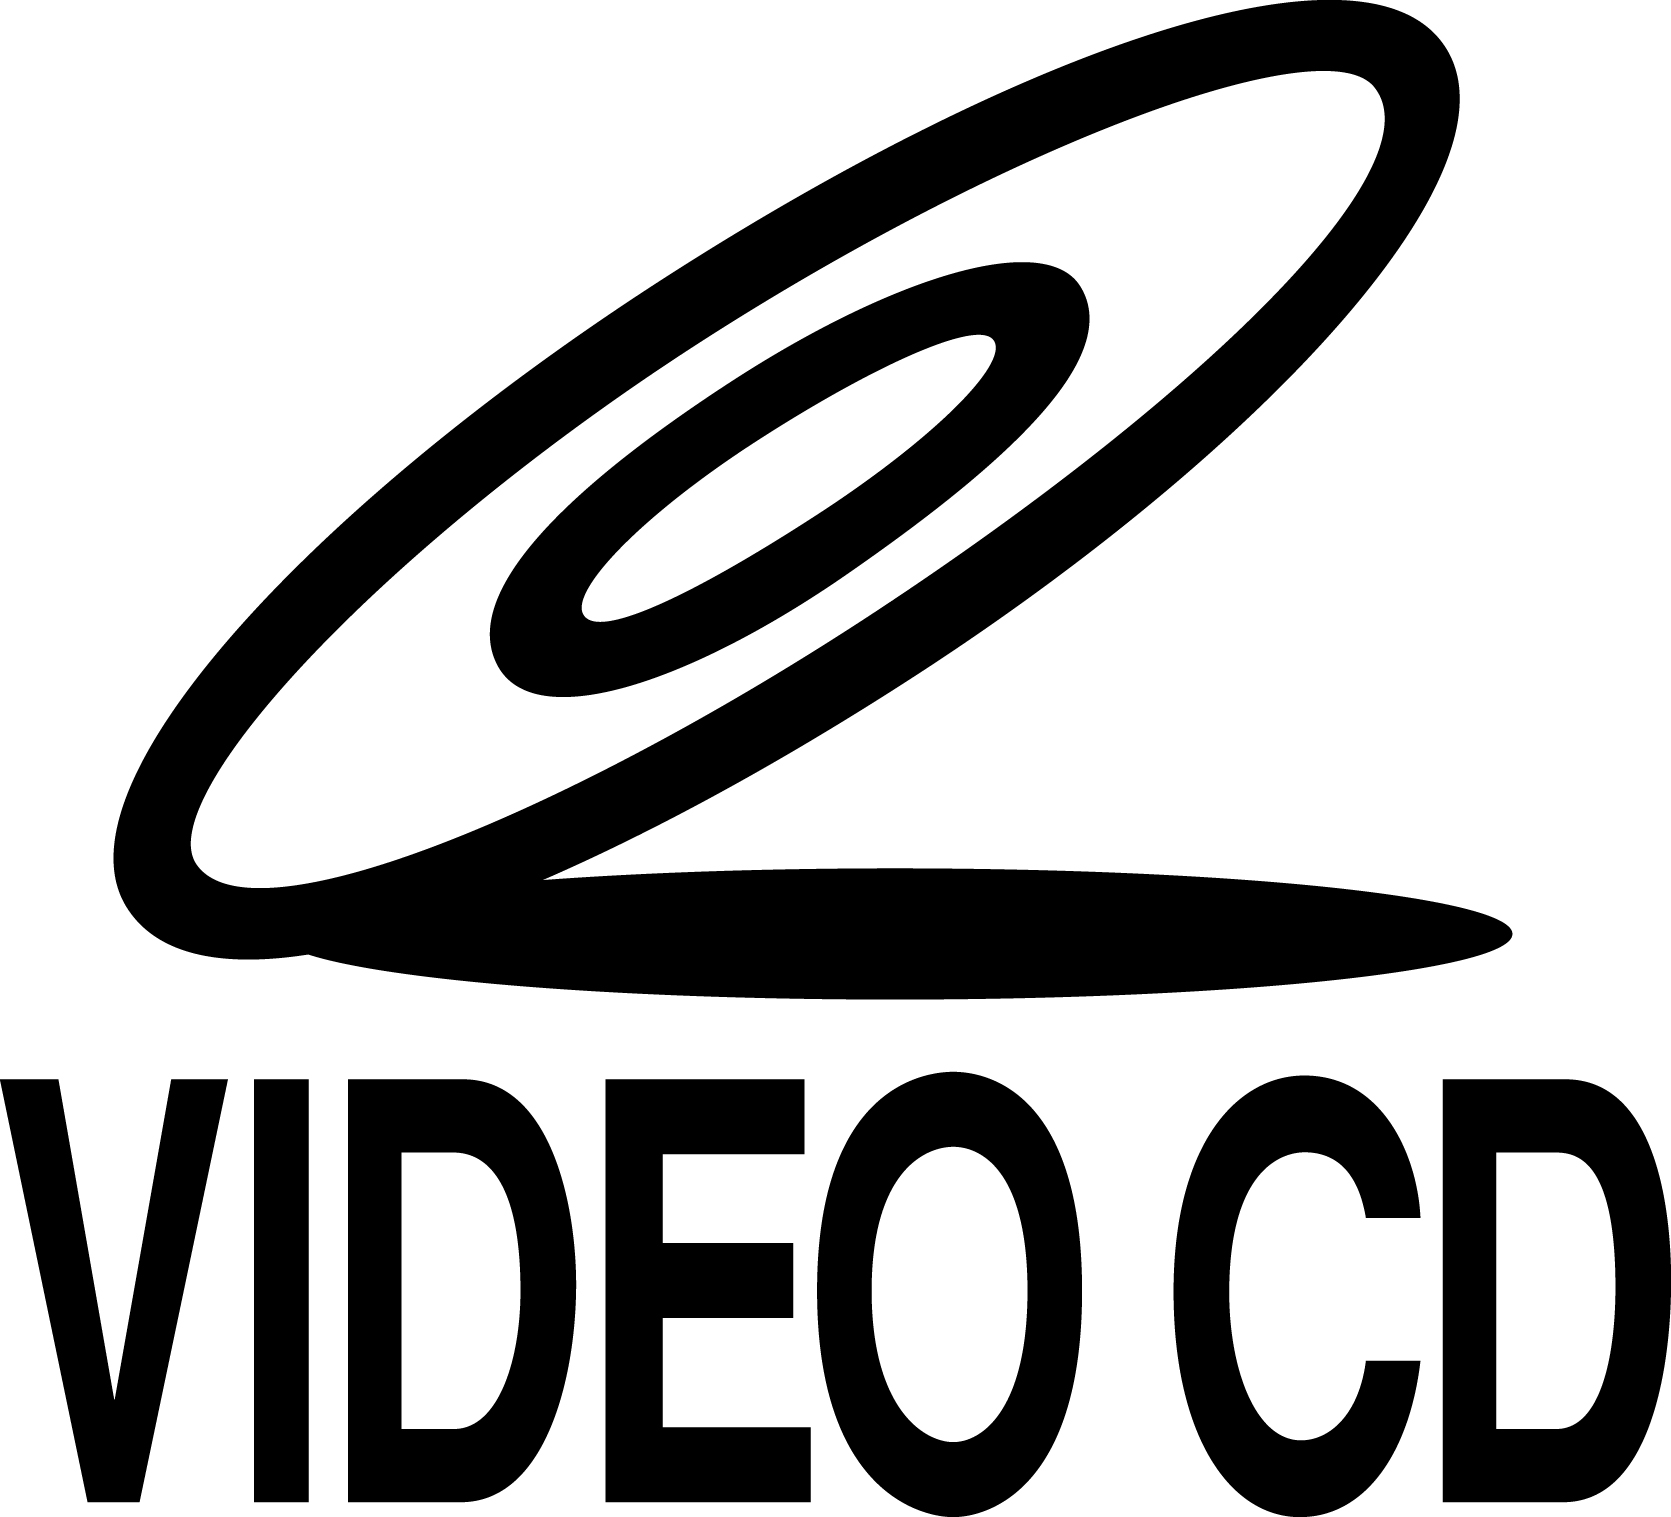 Logo_CD_Video.jpg